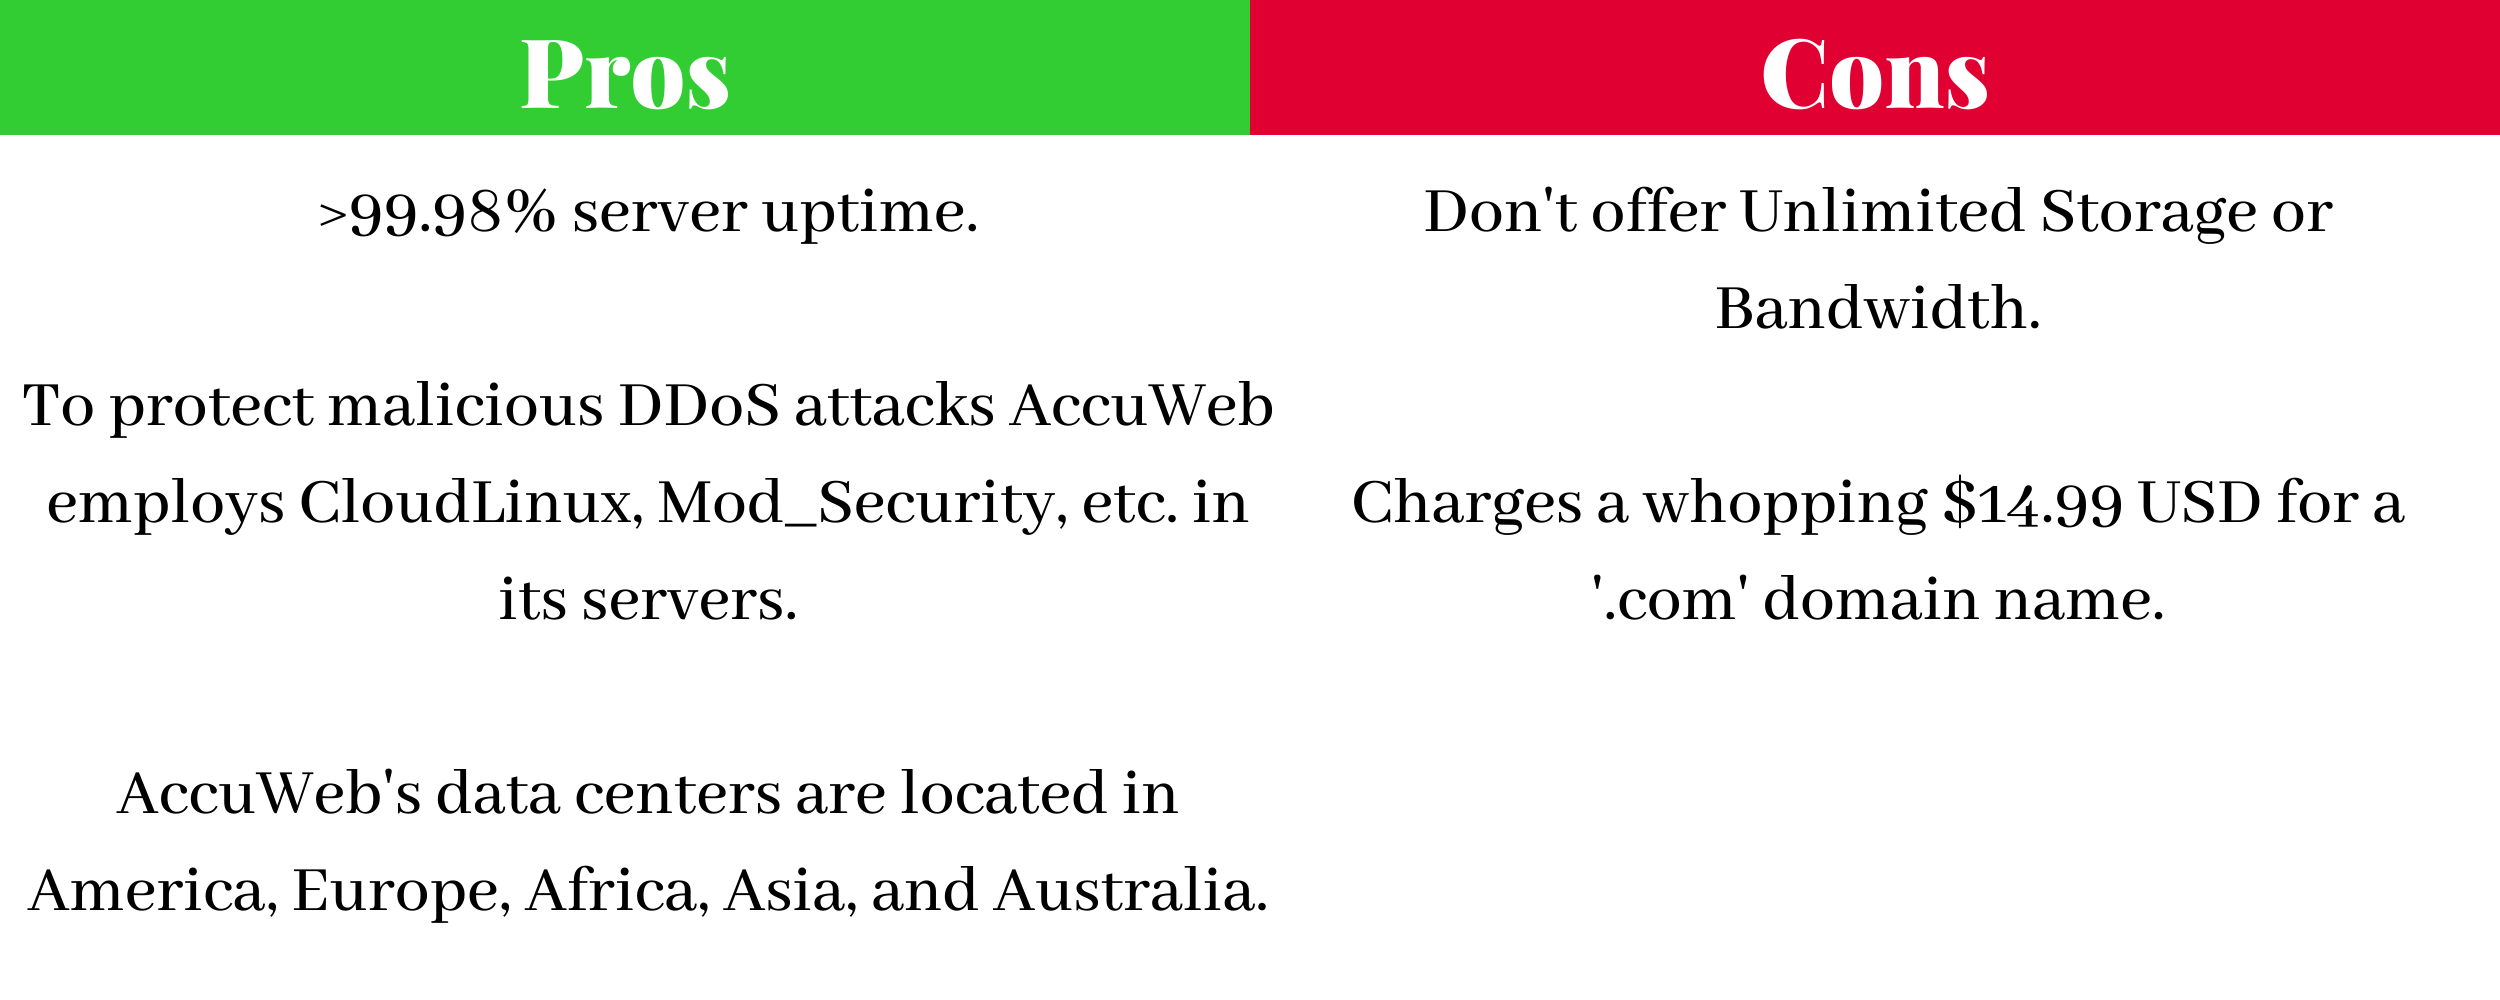 Pros and Cons of AccuWeb hosting